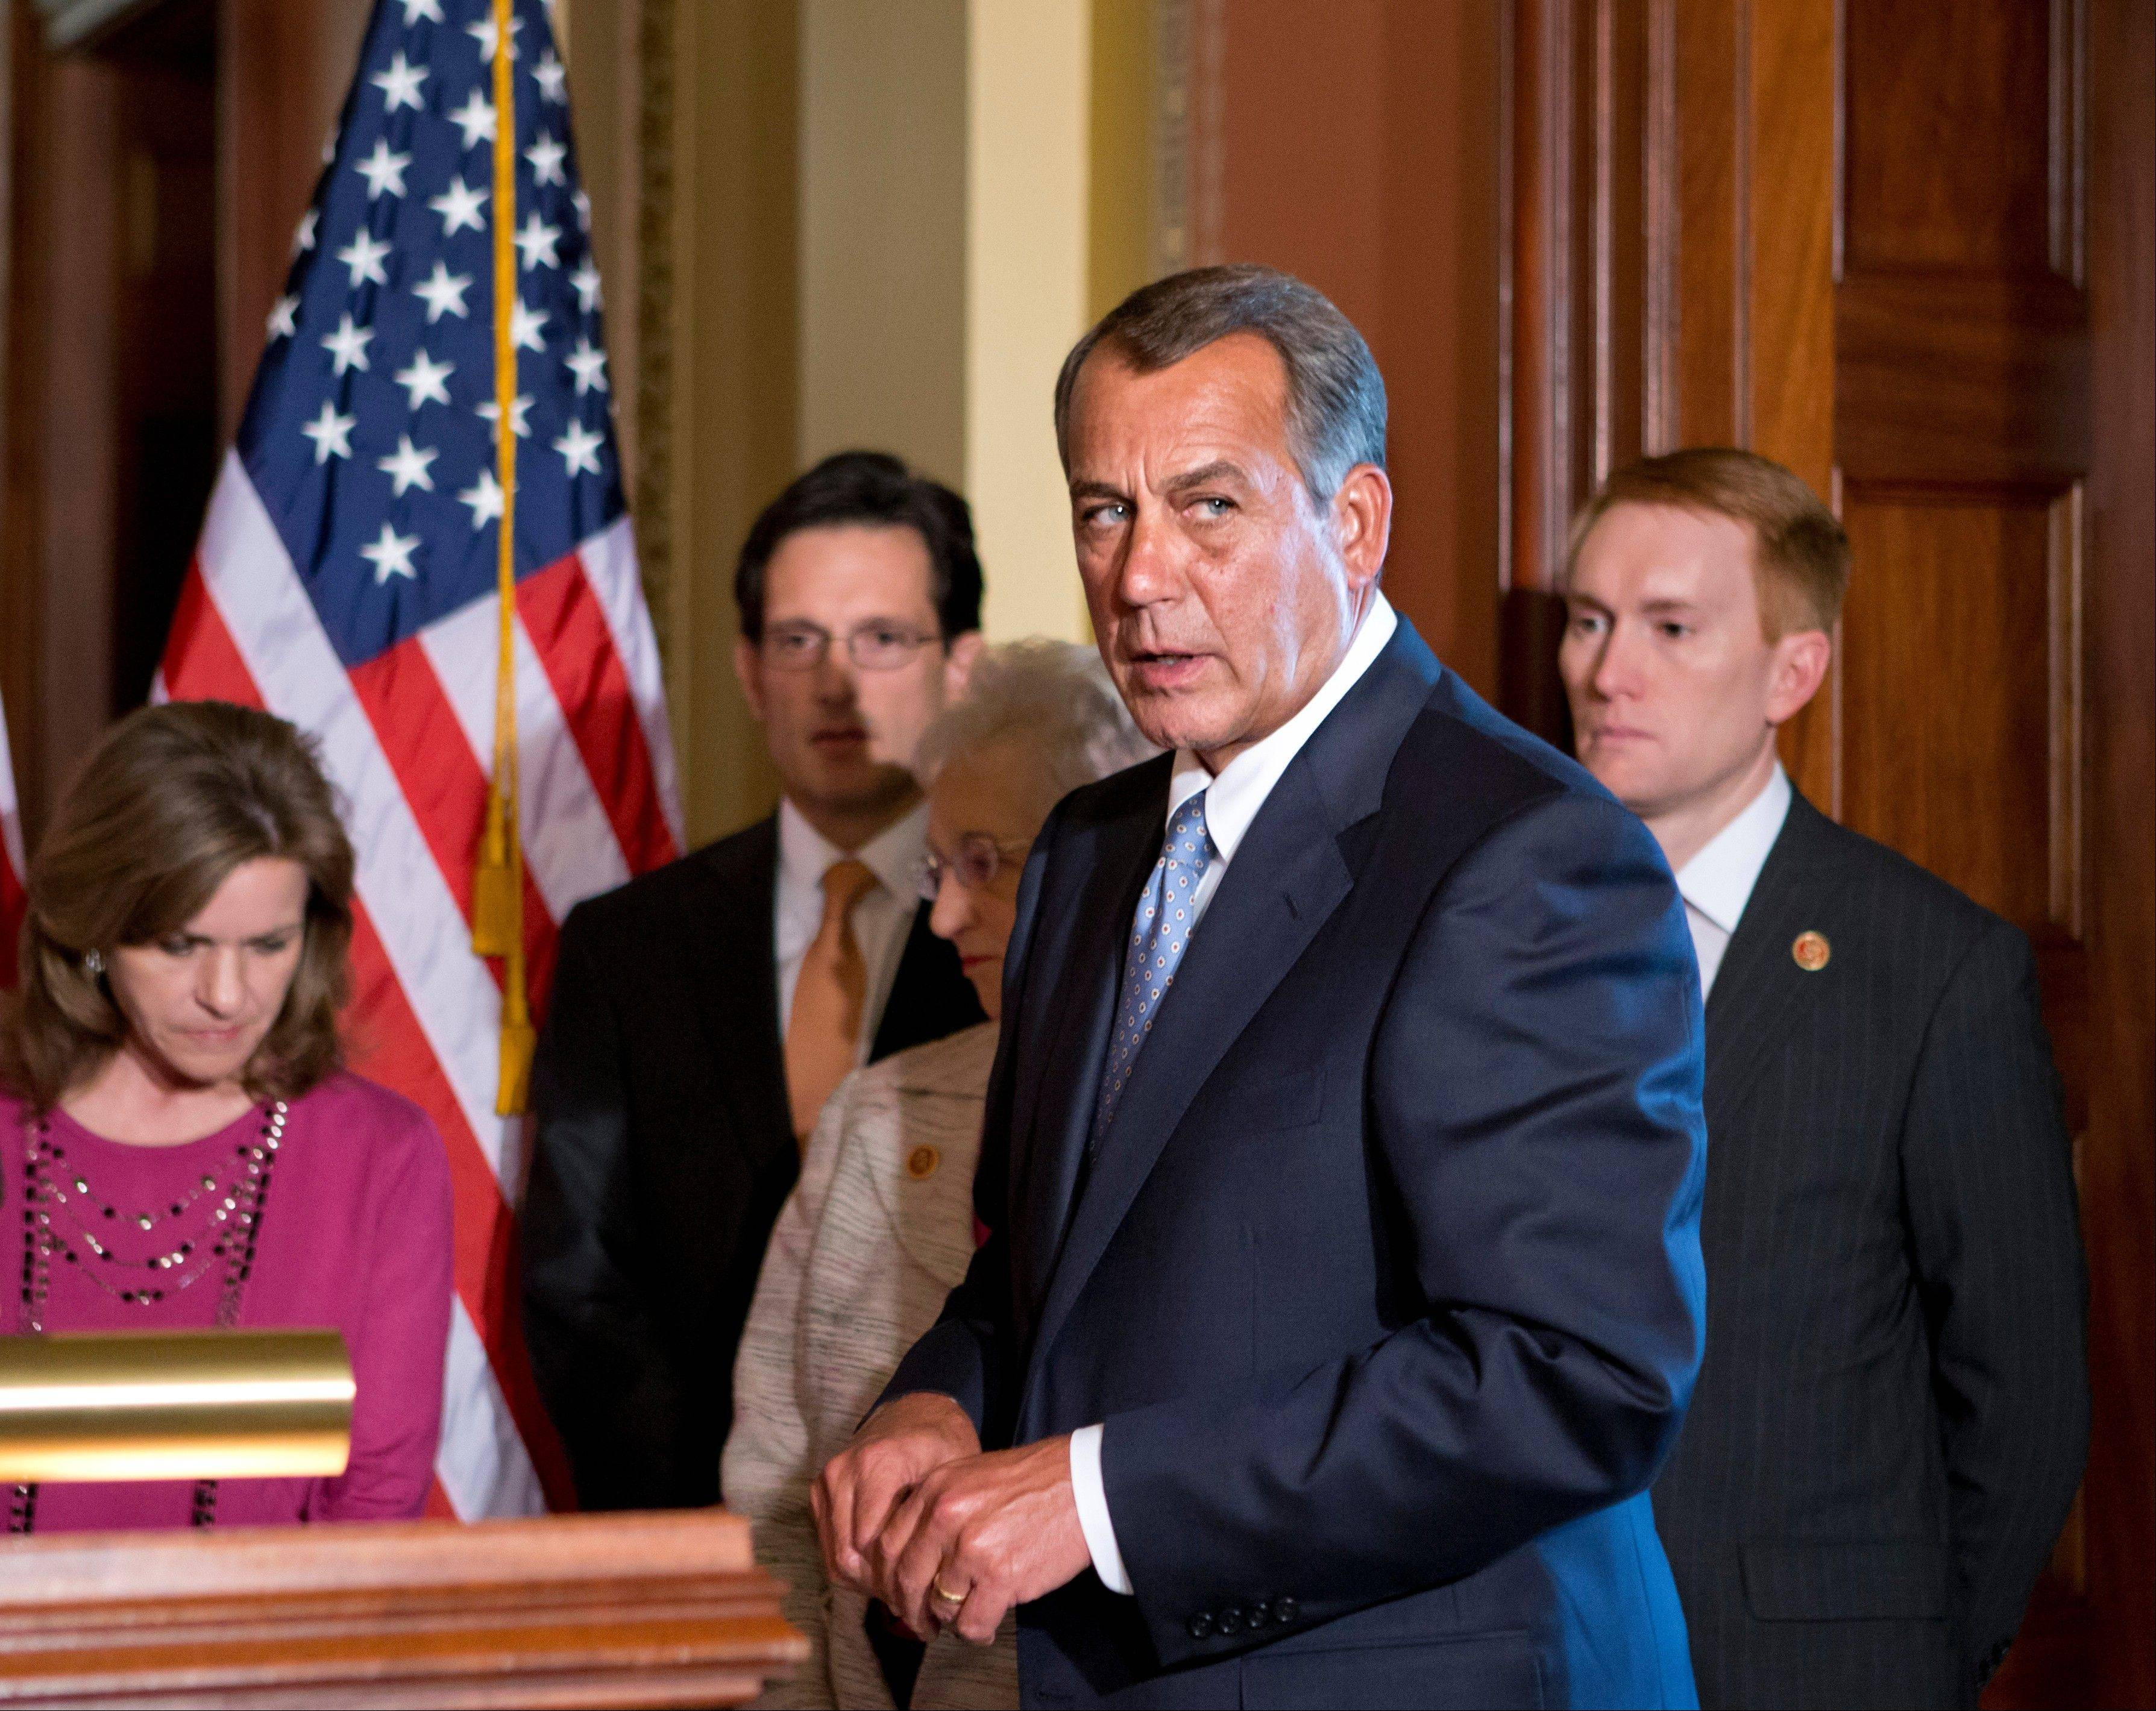 House Speaker John Boehner of Ohio, accompanied by fellow members of the House GOP leadership, responds to President Barack Obama�s remarks to the nation�s governors about how to fend off the impending automatic budget cuts.